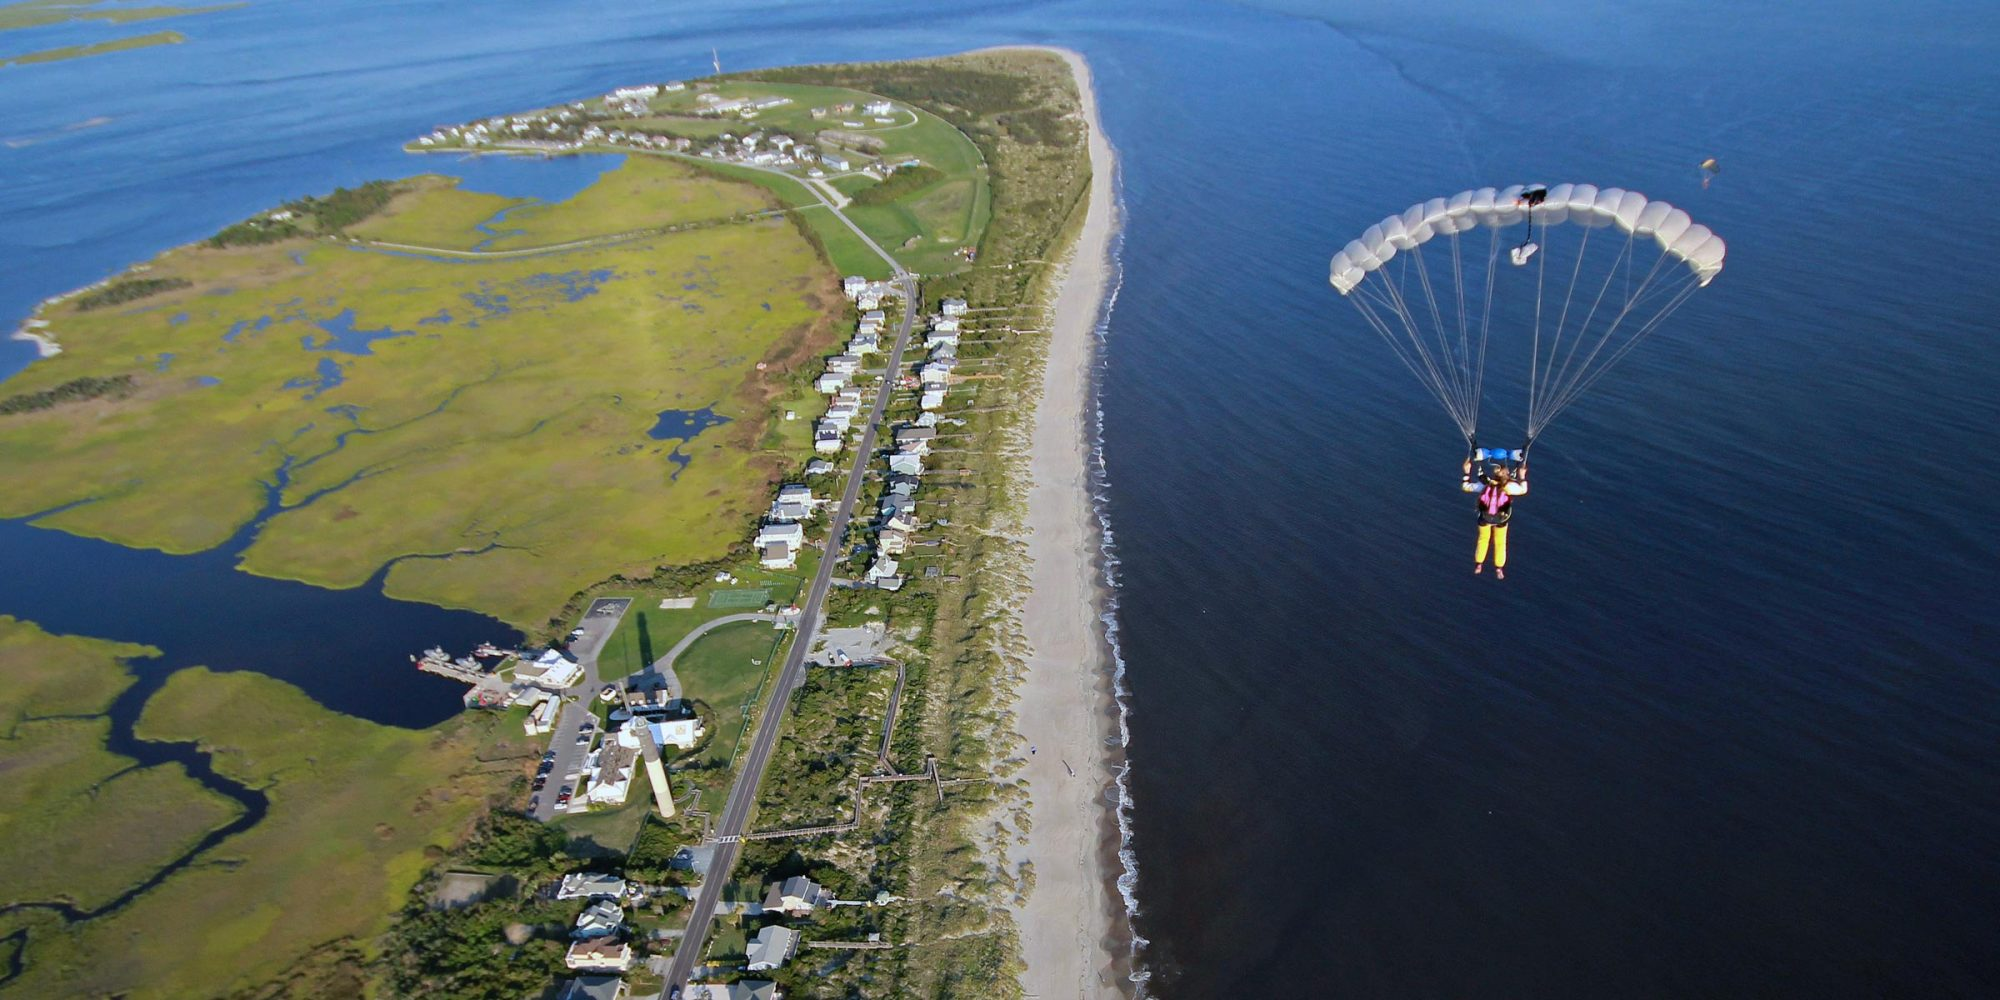 Solo skydiver under white parachute flying over the coast of Oak Island, NC